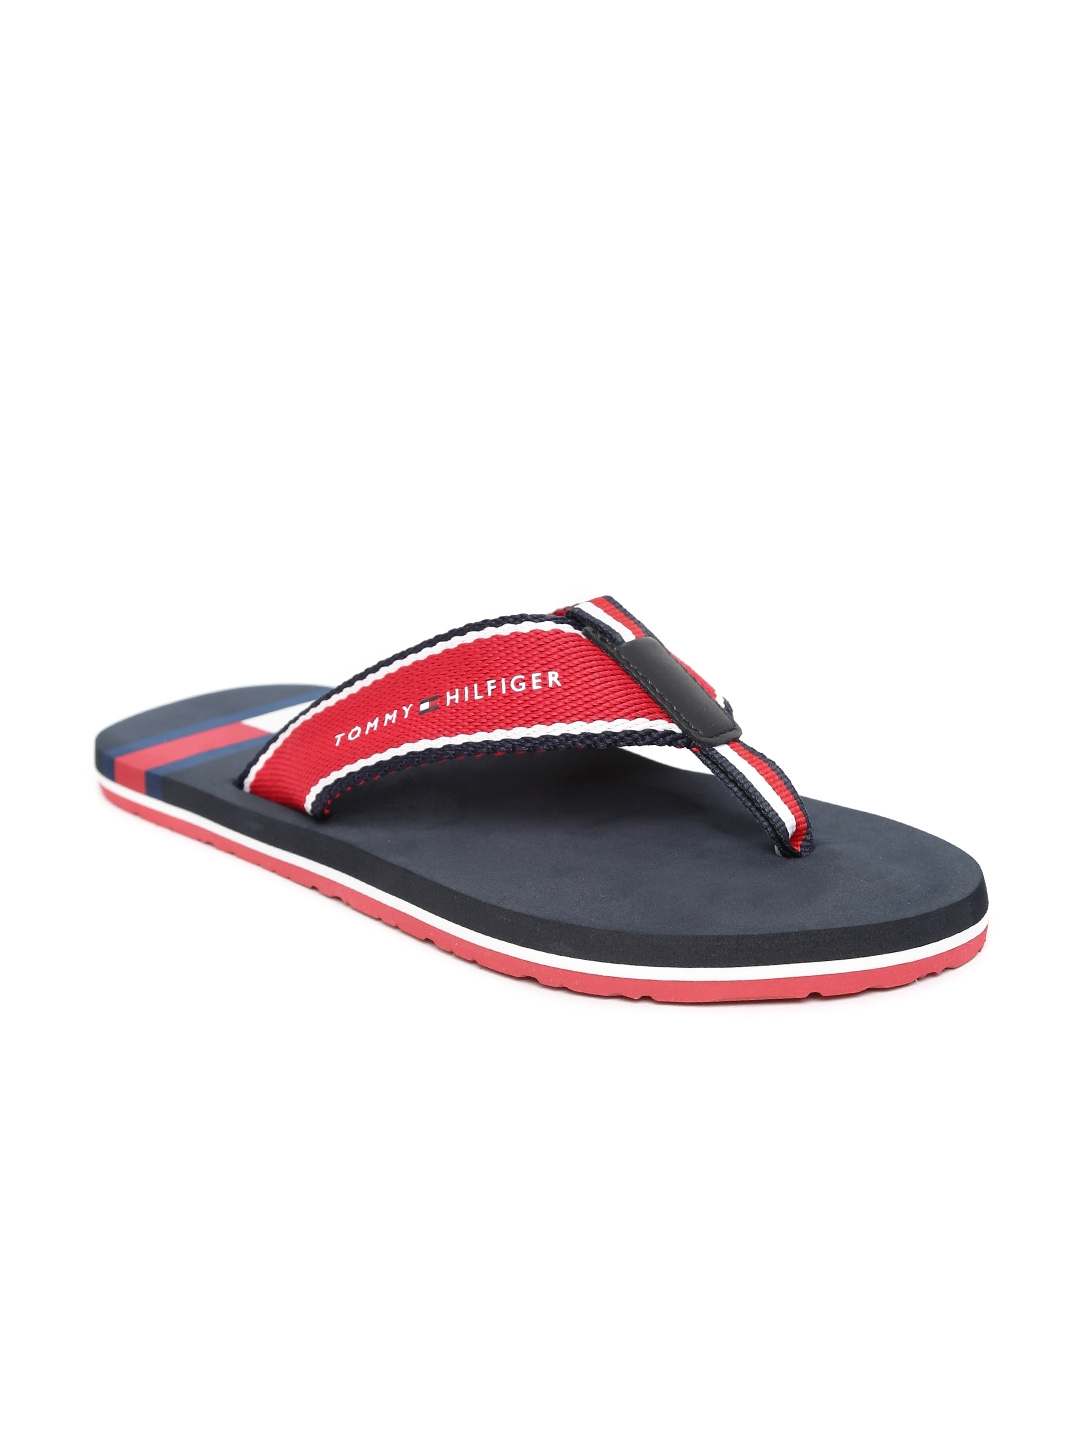 9d6b197da030bb Buy Tommy Hilfiger Men Red   Navy Printed Thong Flip Flops - Flip ...